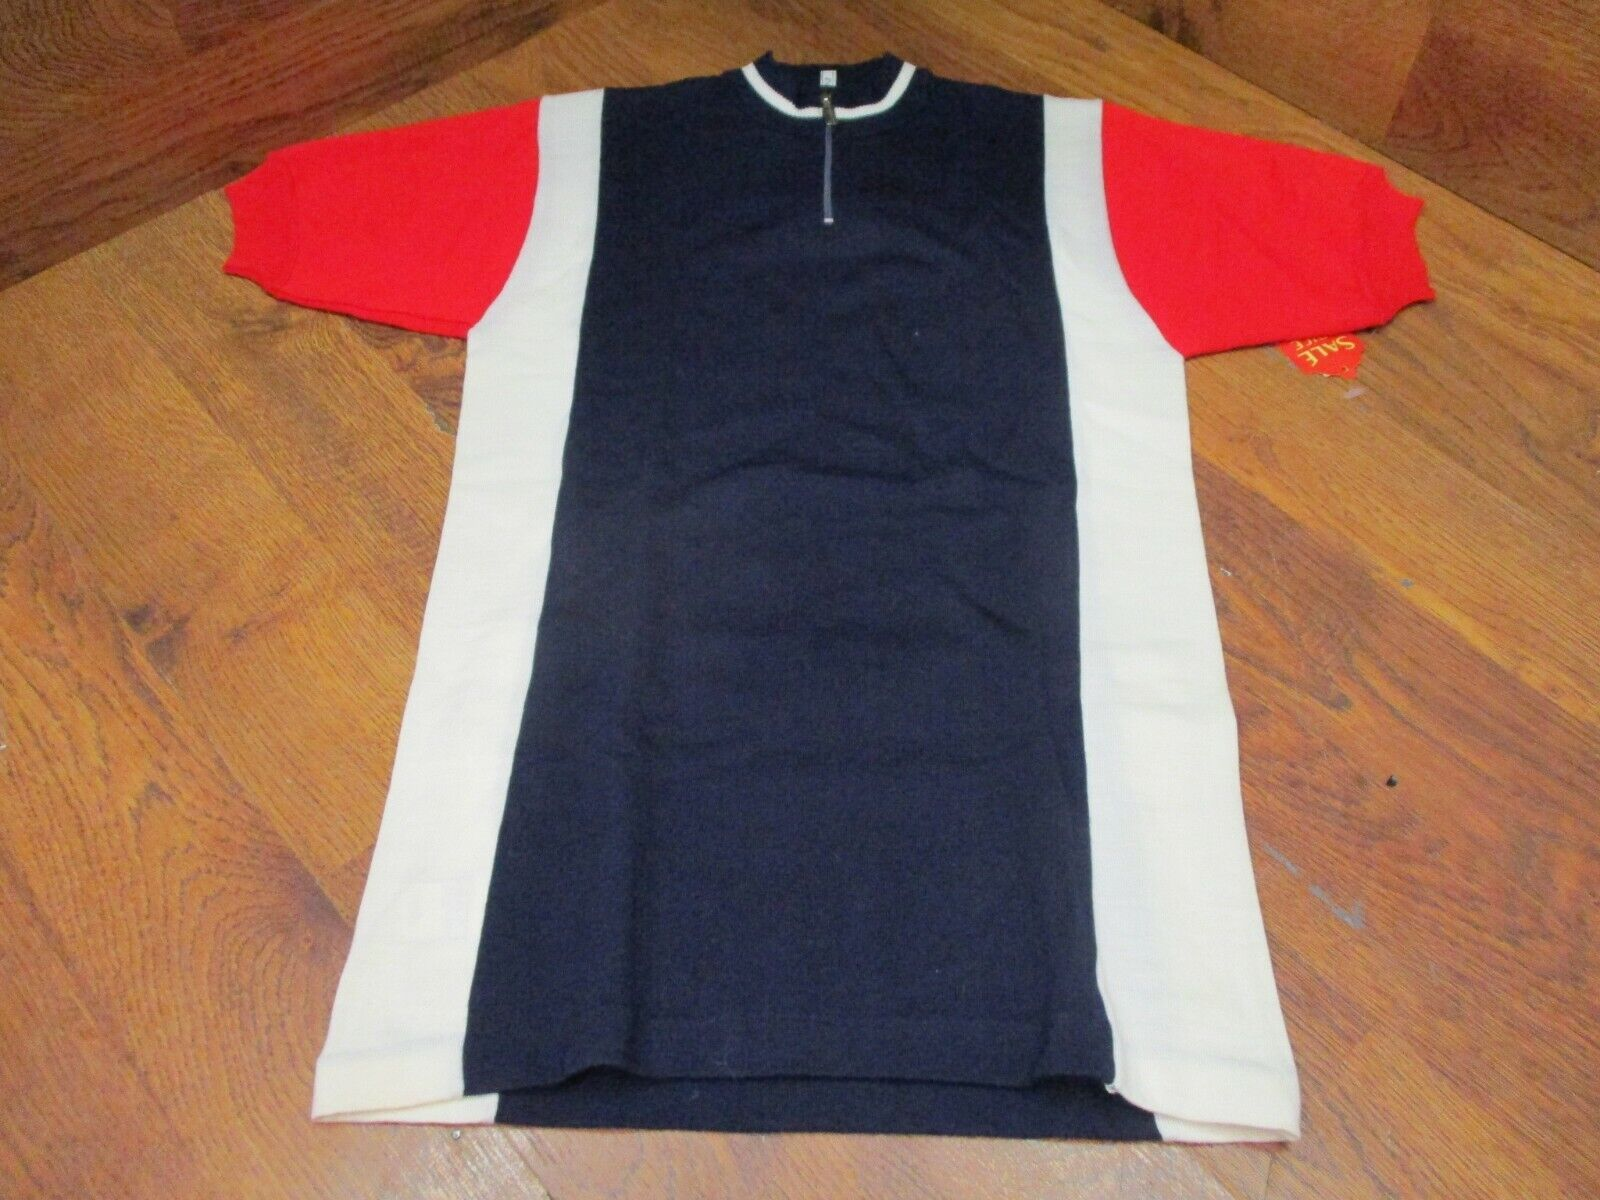 VINTAGE SANTINI WOOL  BLEND 1 4 ZIP CYCLING JERSEY - RED WHITE blueE 2  2018 store